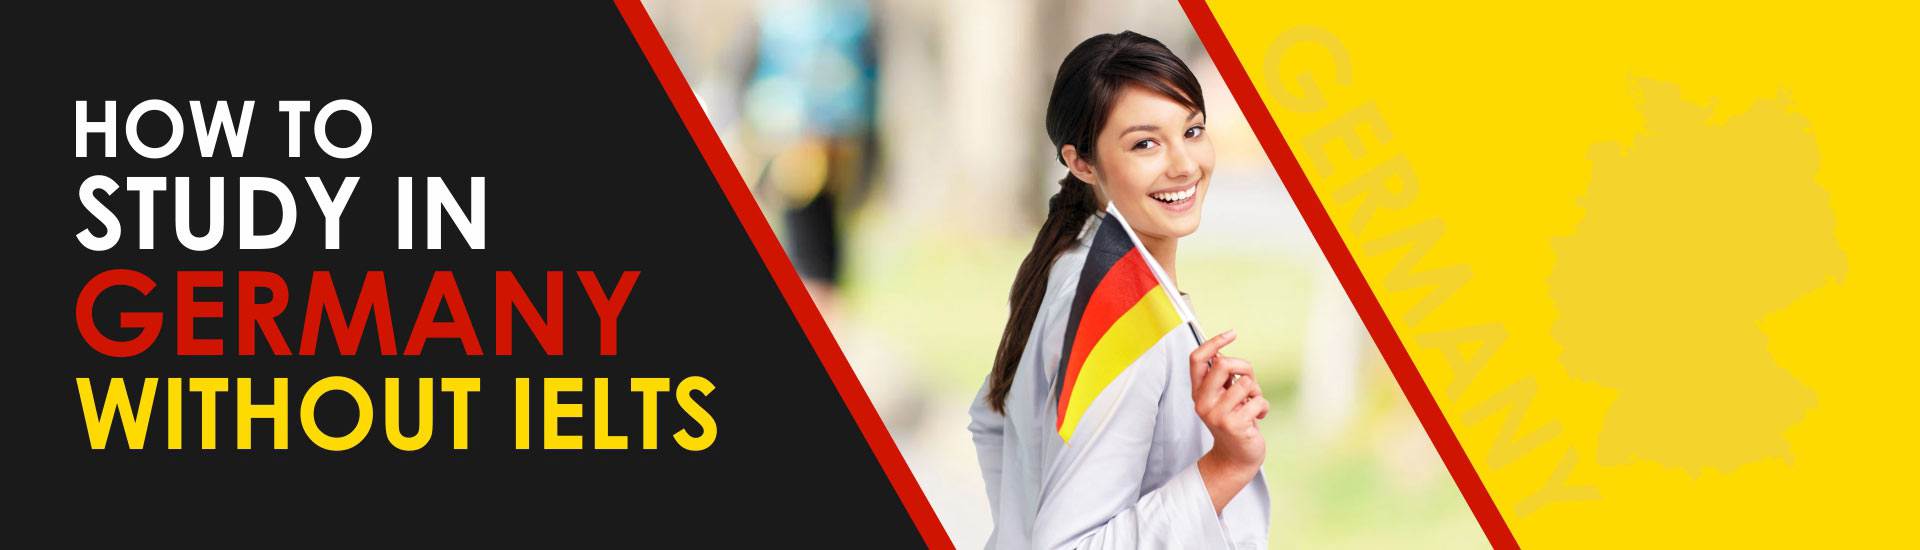 How to Study in Germany Without IELTS?